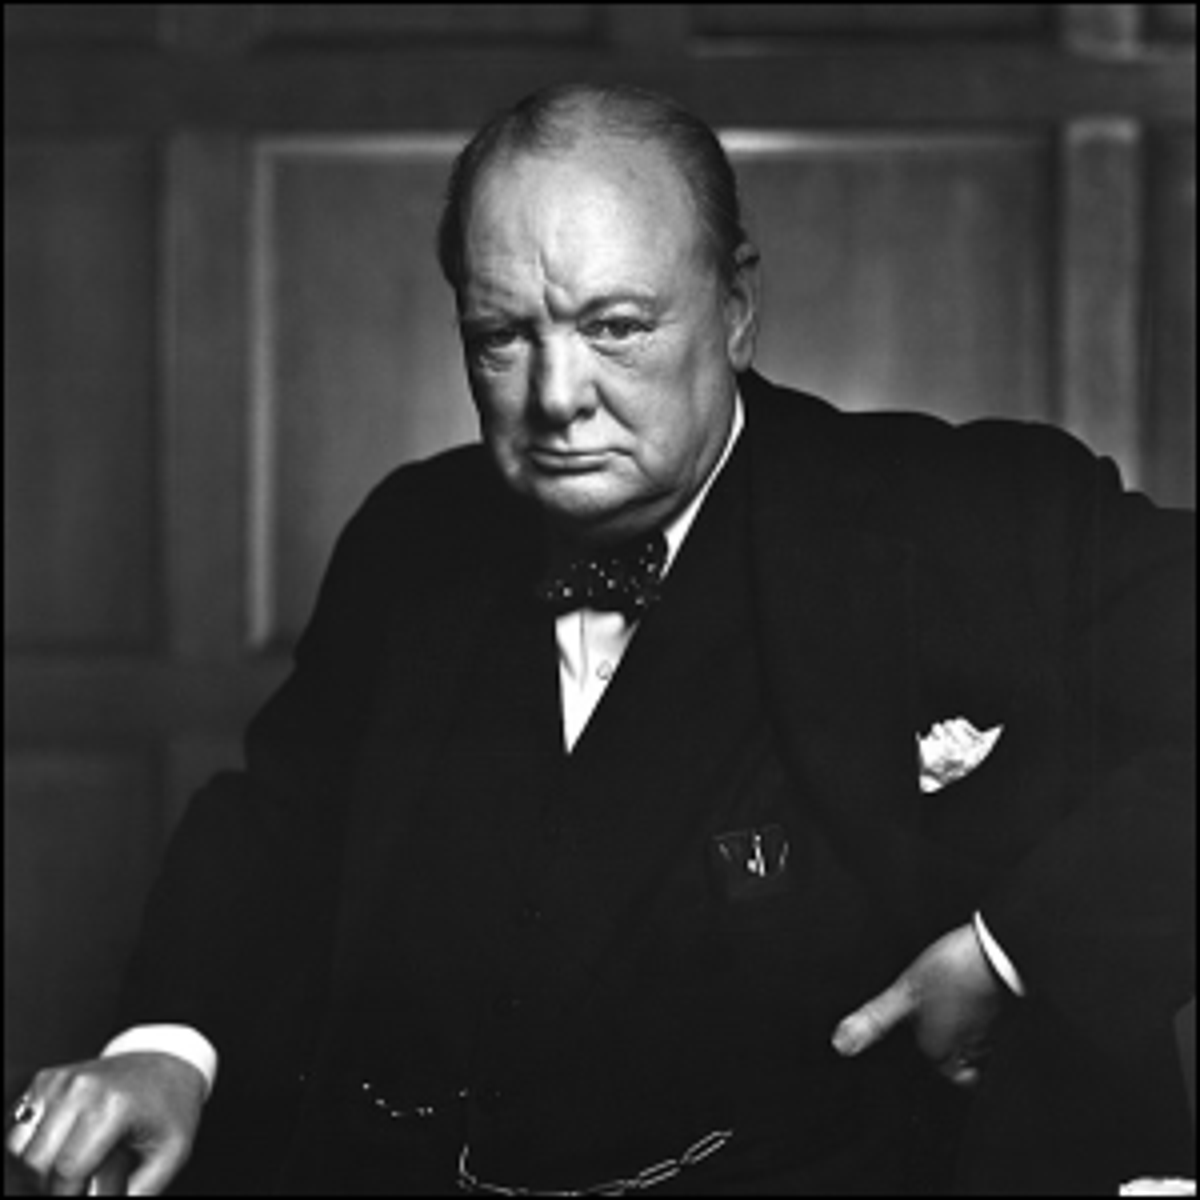 Photo of Sir Winston Churchill taken in Ottawa, Ontario, Canada on December 30, 1941.